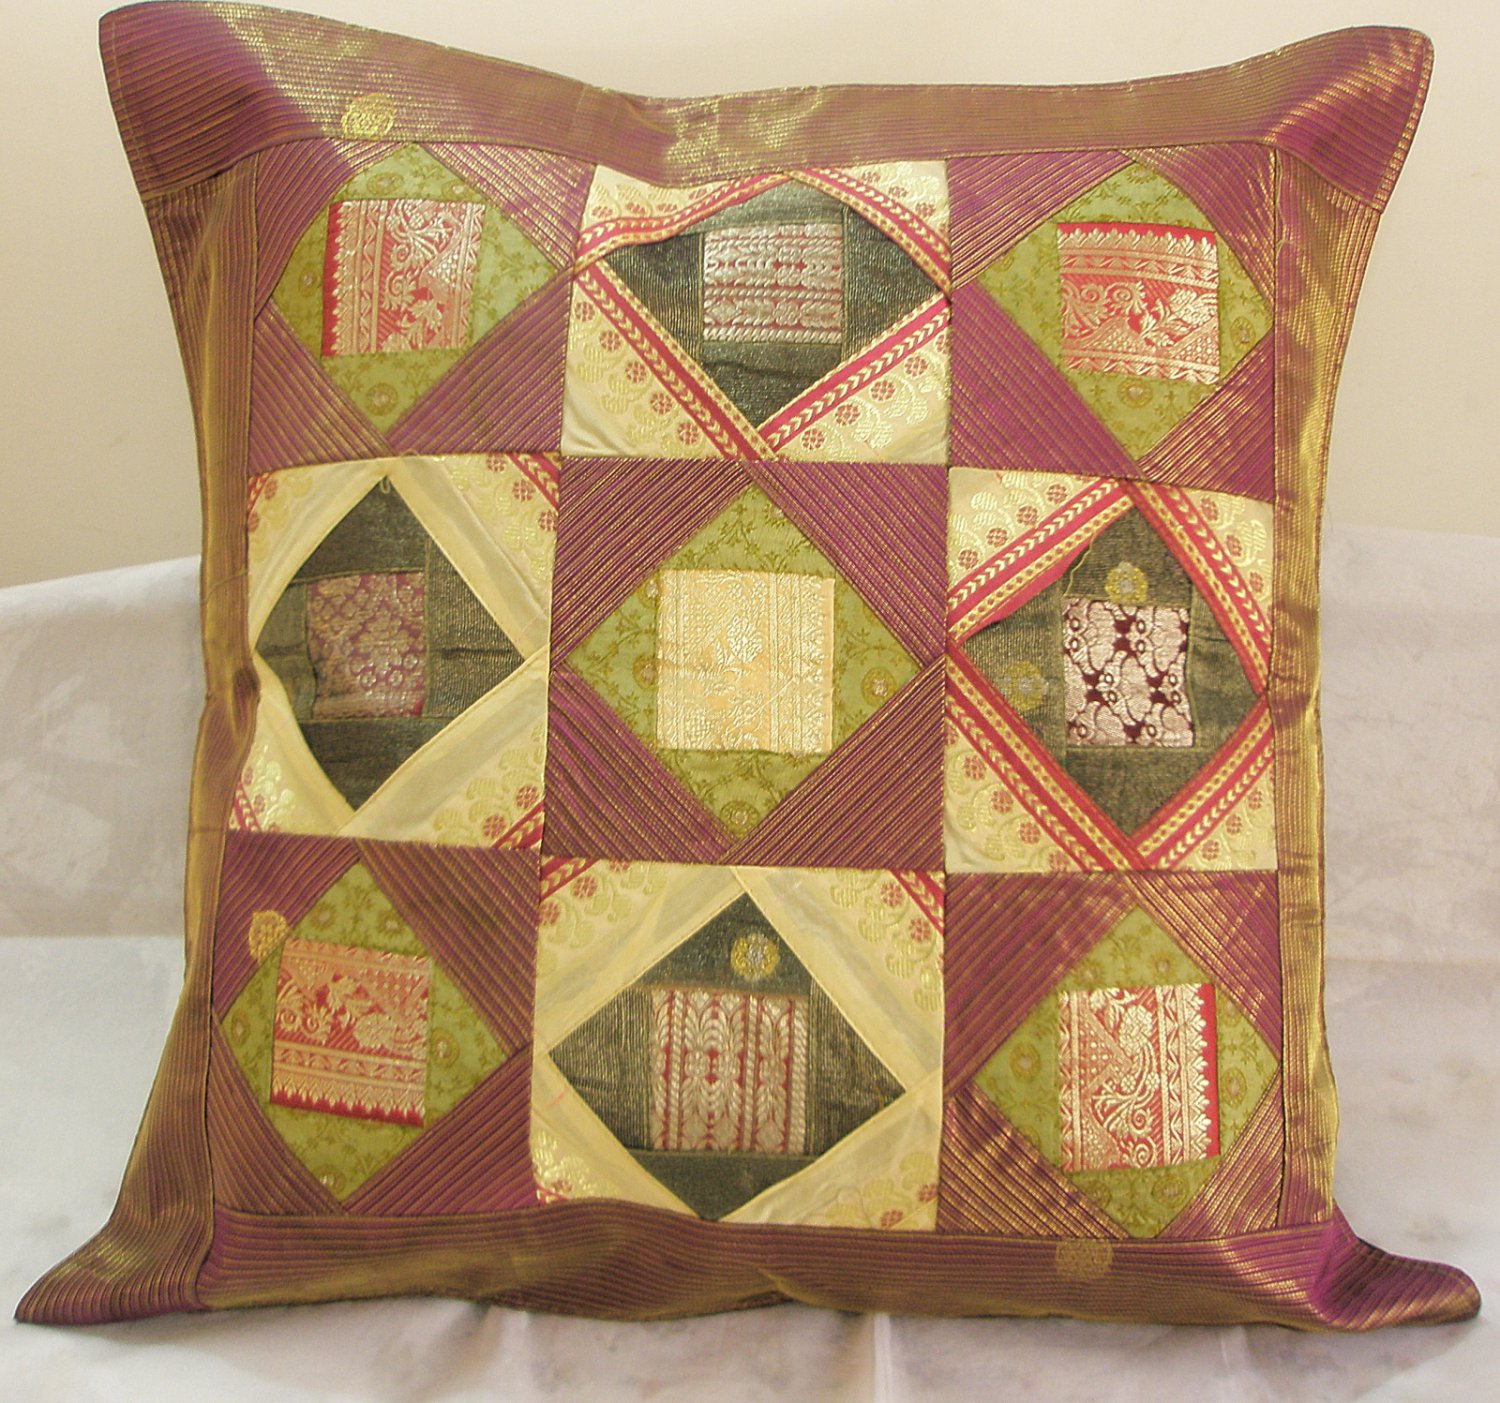 extra large sofa cushion covers bed vancouver canada 24 inch ethnic patchwork indian pillow